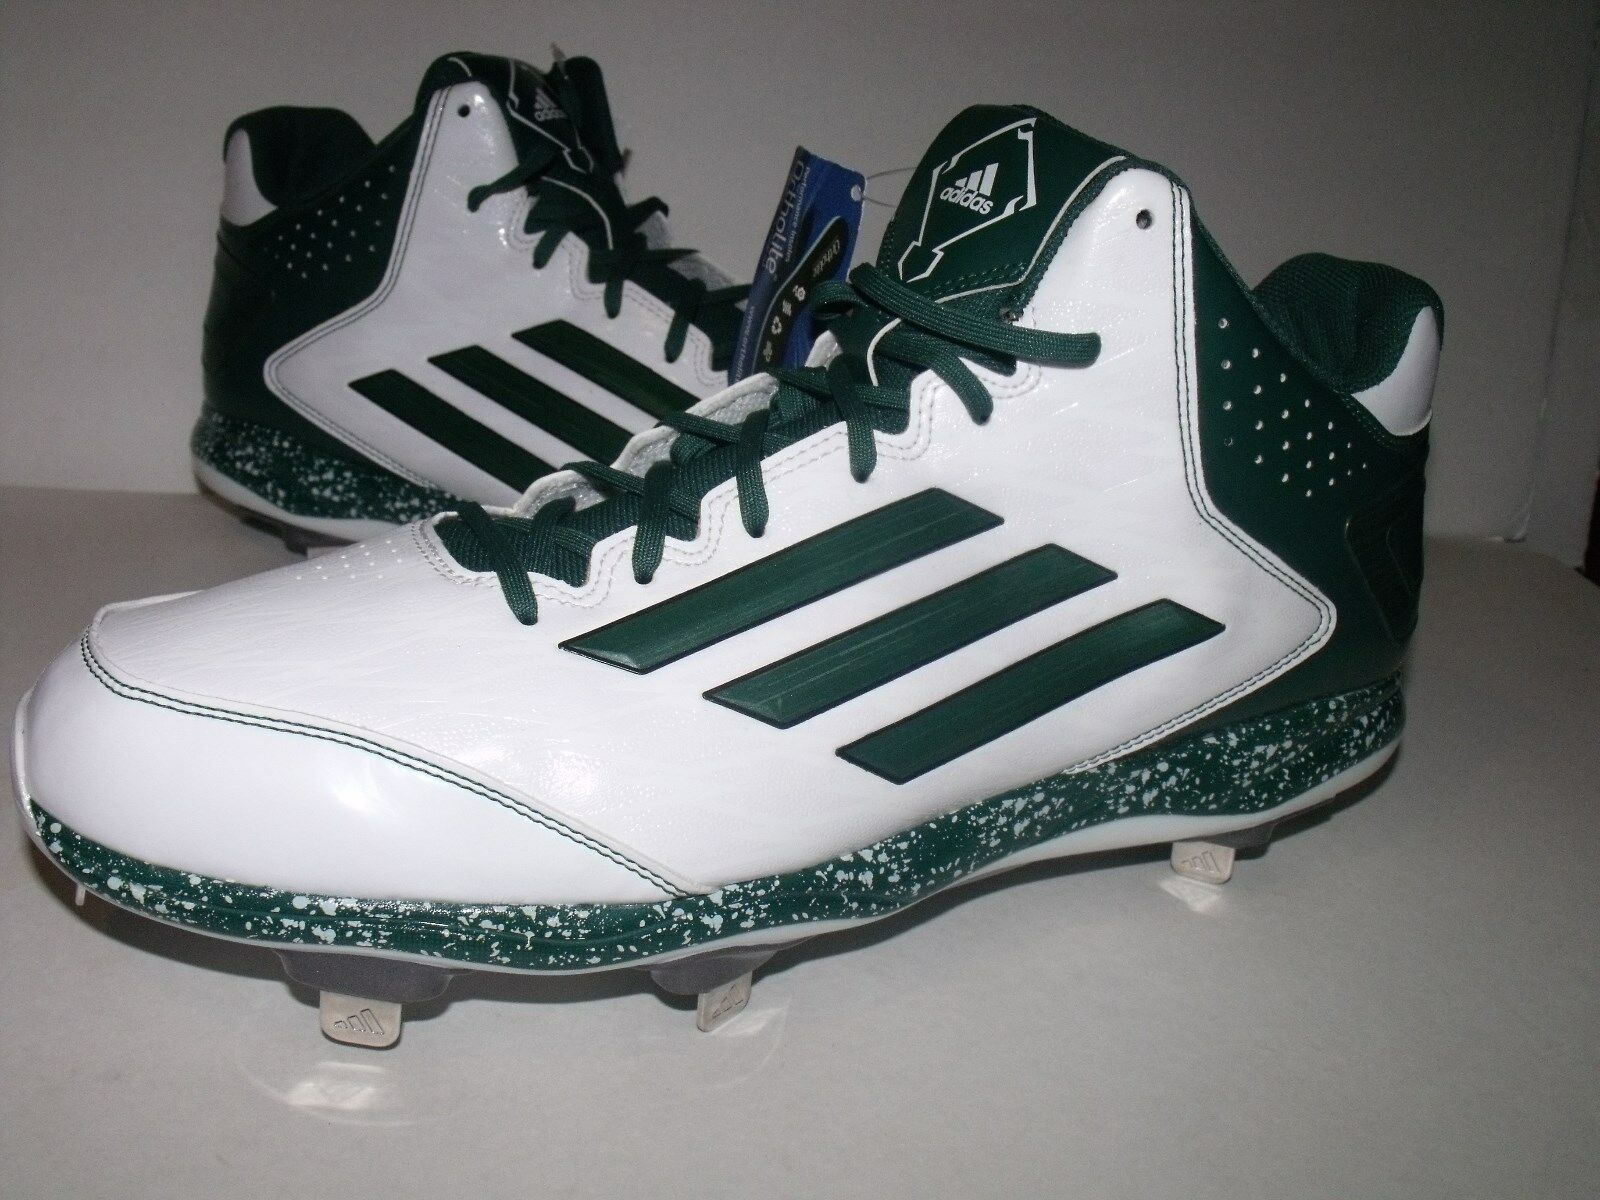 Adidas Power Alley 2 Mens Mid Metal BASEBALL Cleats Price reduction NEW Mens Sz 15 Brand discount